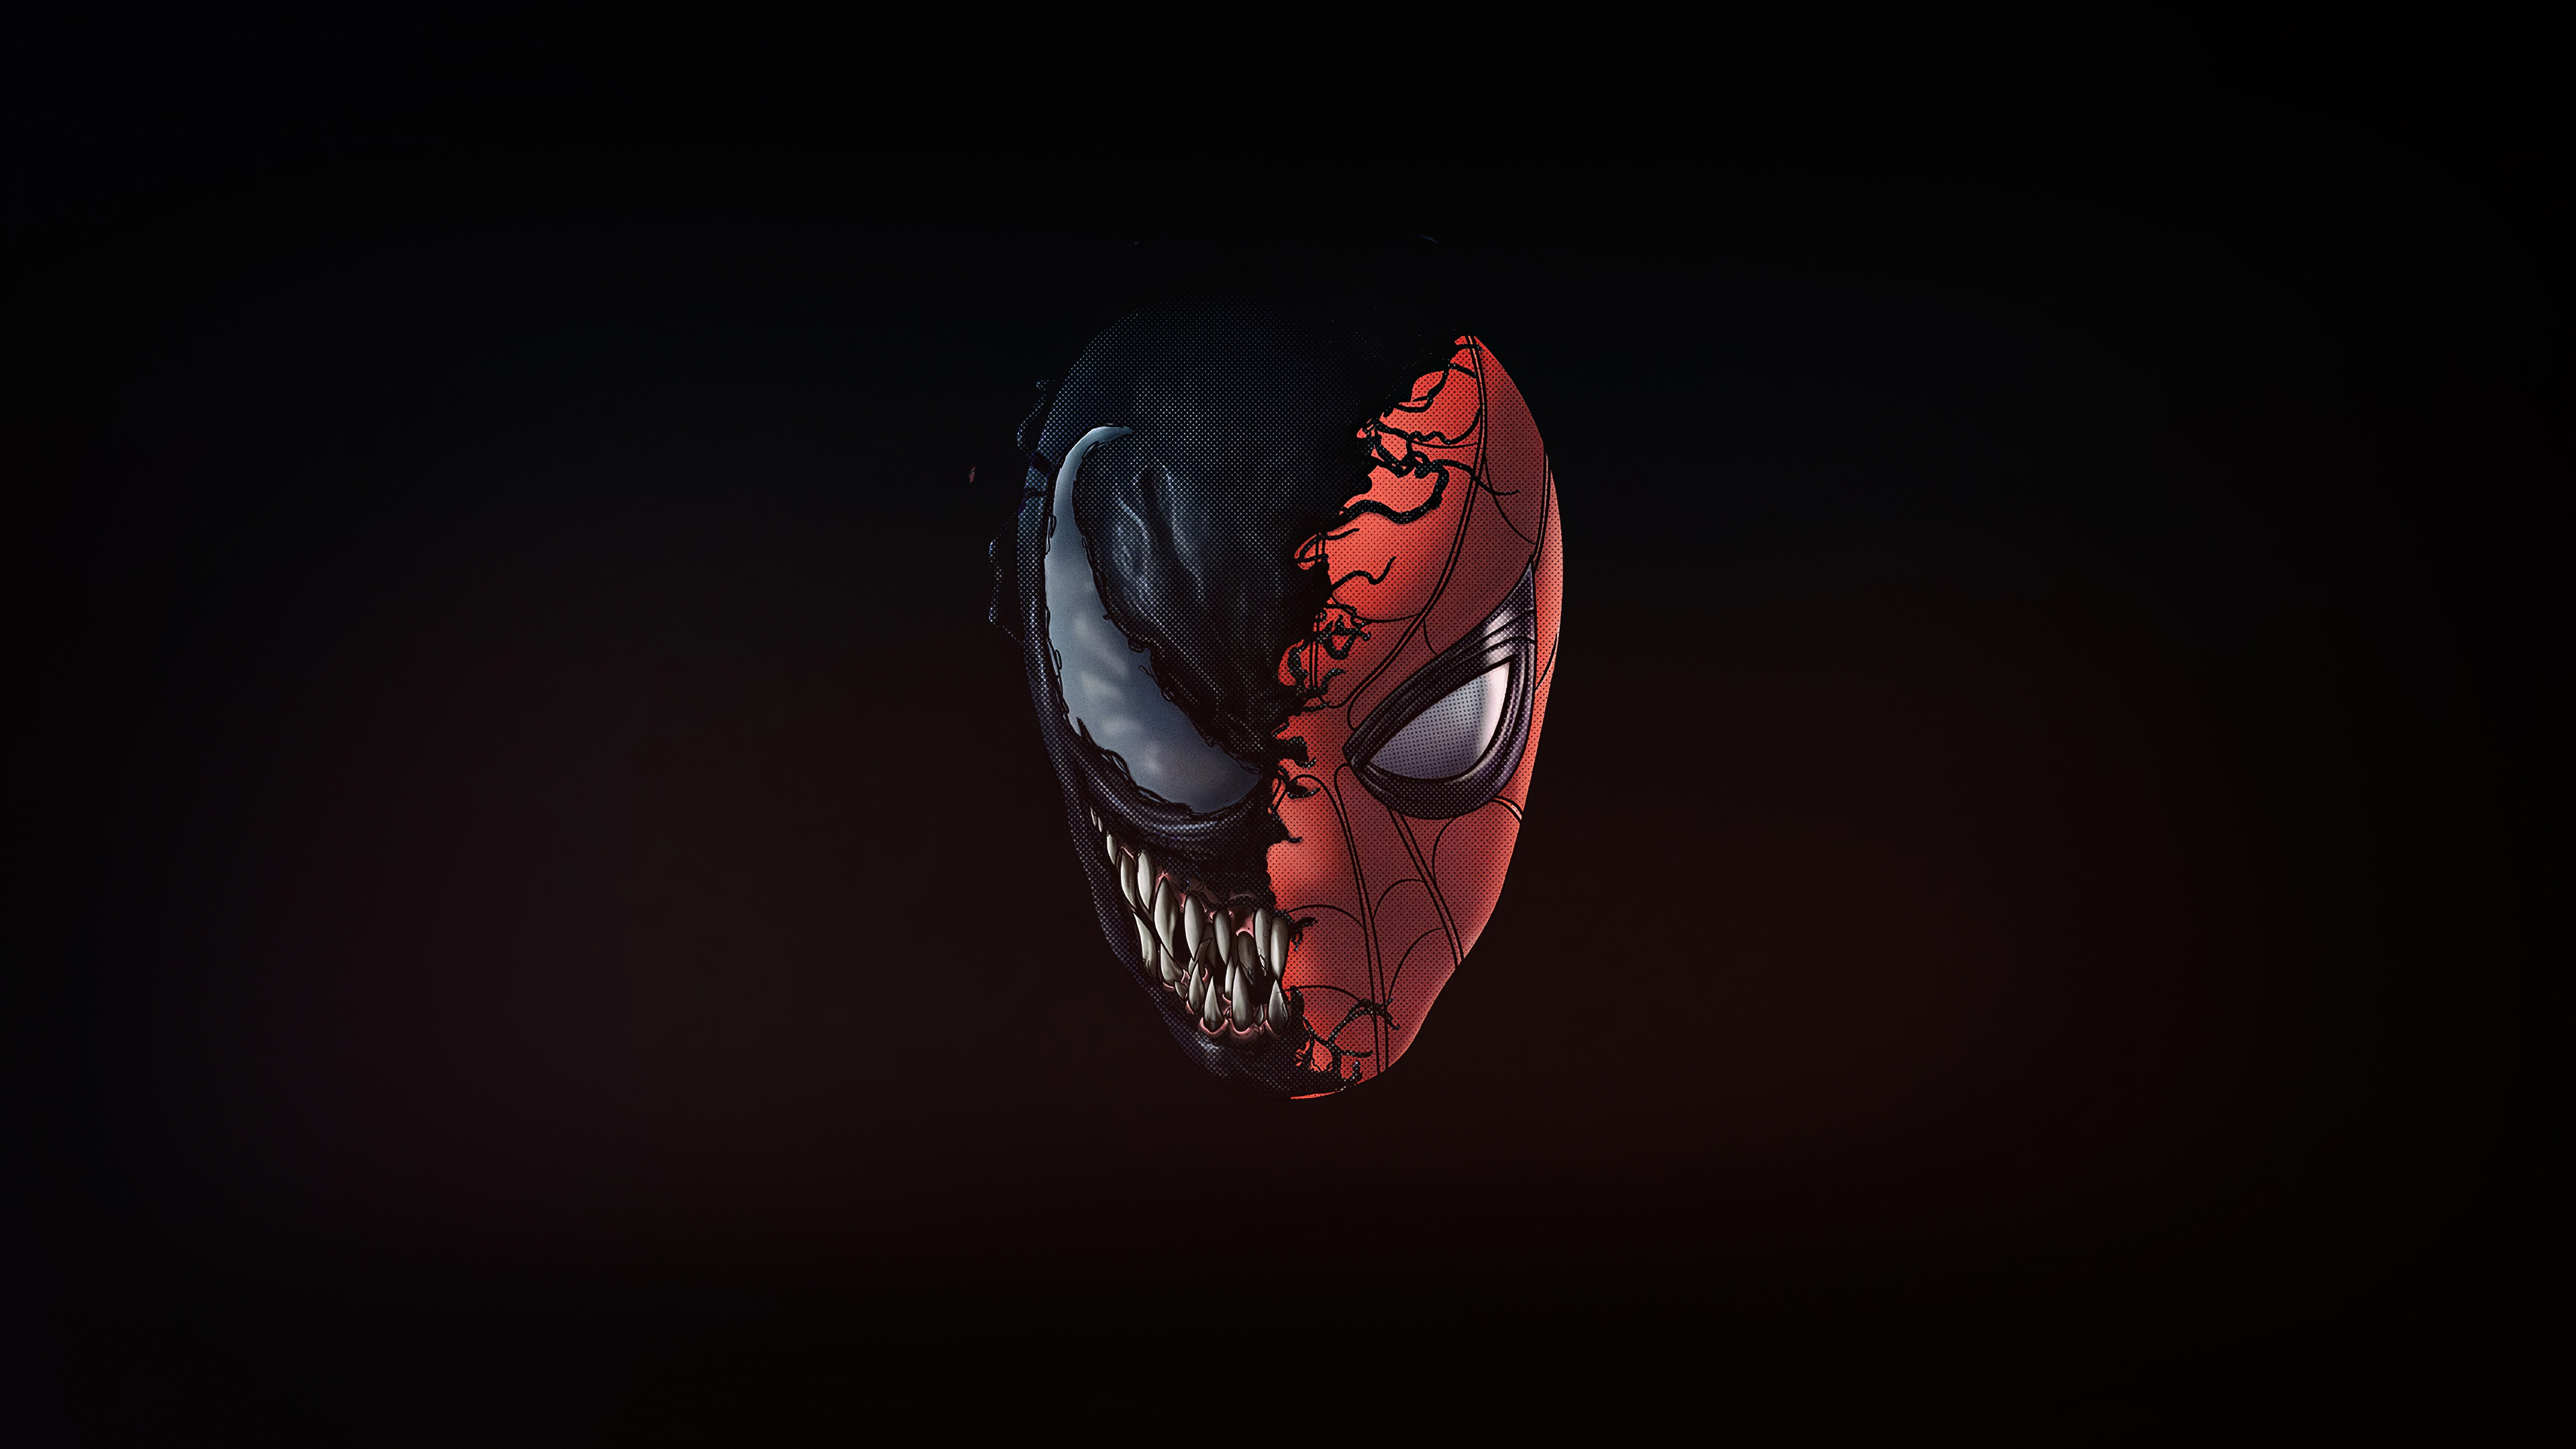 Spiderman X Venom 4k Hd Superheroes 4k Wallpapers Images Backgrounds Photos And Pictures